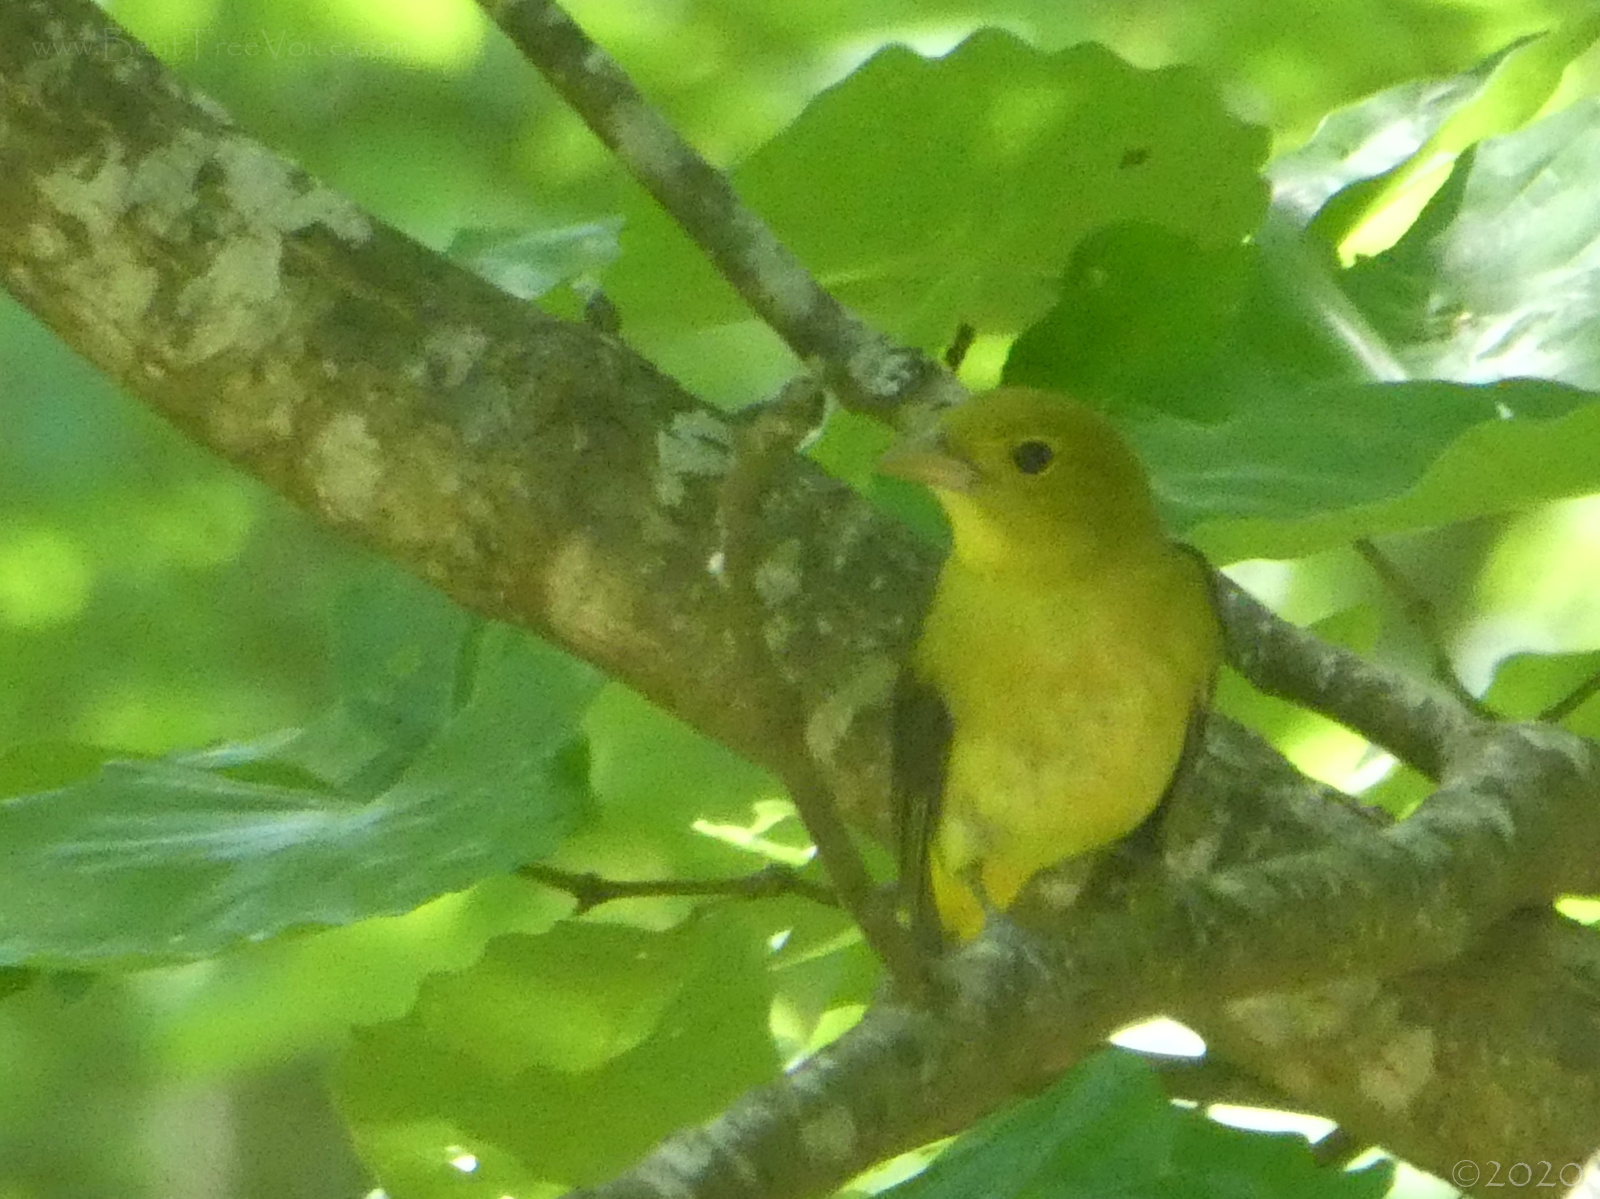 May 2, 2020 - Scarlet Tanager in Bent Tree (female or nonbreeding male)